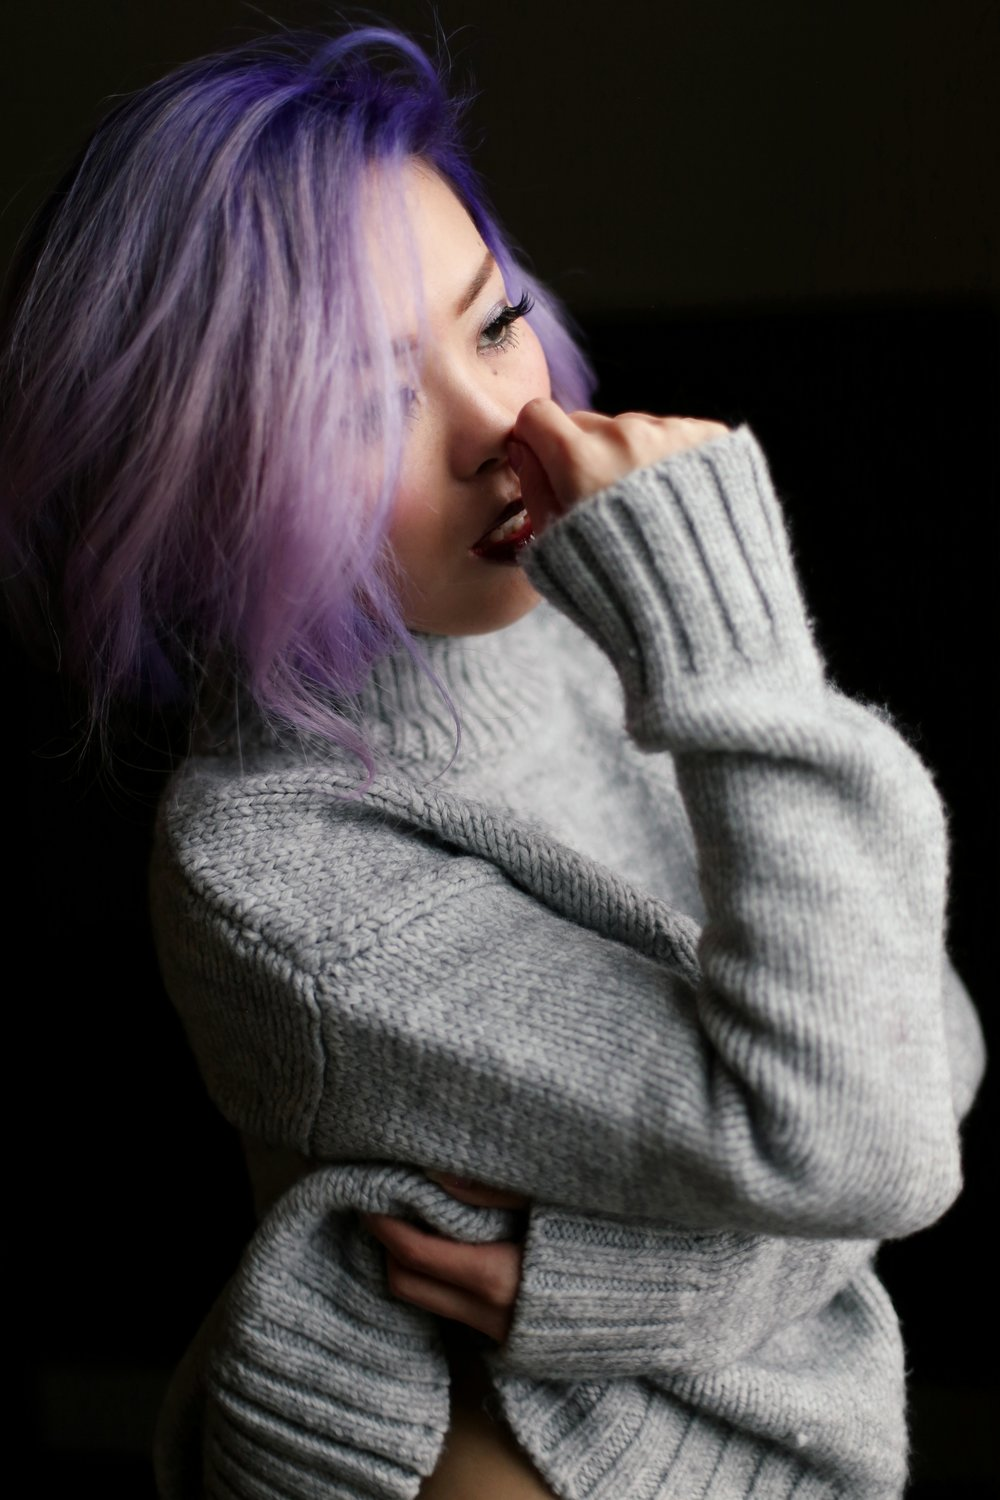 Boudoir Photo-black and white photography-sweater weather-turtle neck sweater-black lingerie-dark lipstick-japanese-Aika's Love Closet-Seattle model-Seattle Style blogger-Lavender Hair-colored Hair-Mermaid Hair-Zara Sweater 14